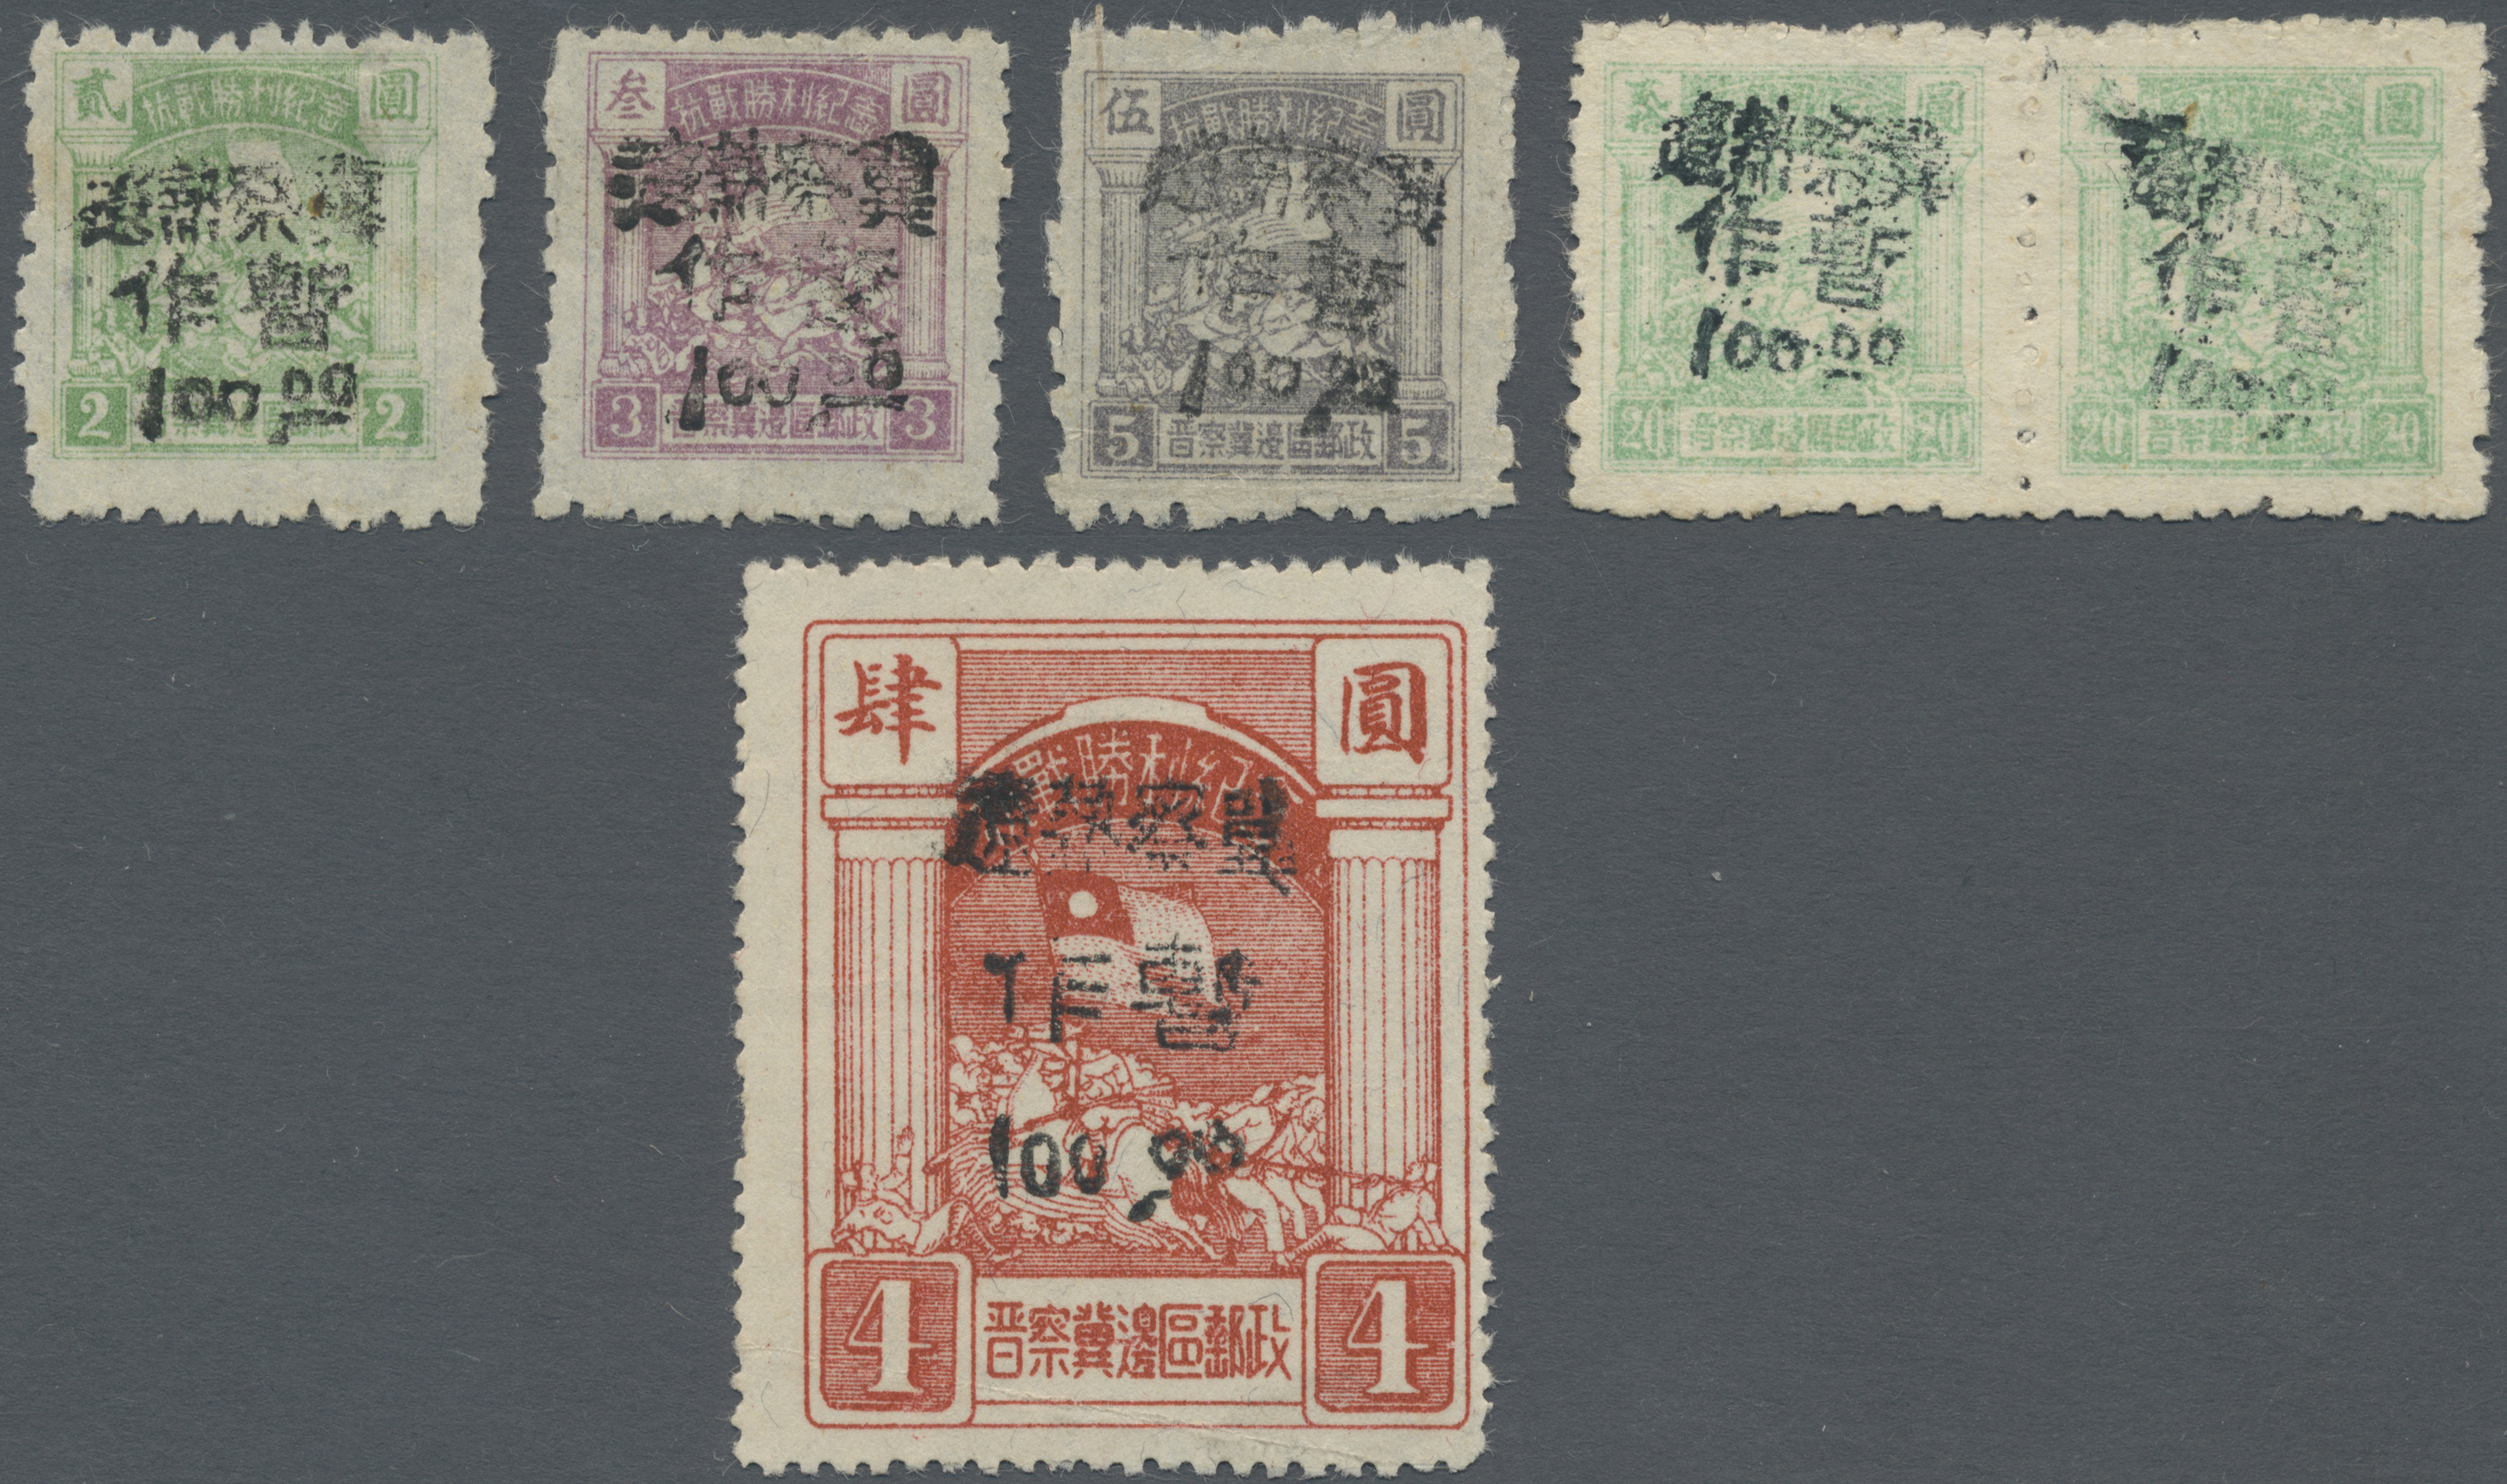 Lot 05020 - China - Volksrepublik - Provinzen  -  Auktionshaus Christoph Gärtner GmbH & Co. KG Sale #43 China & China - Liberated Areas, Day 3